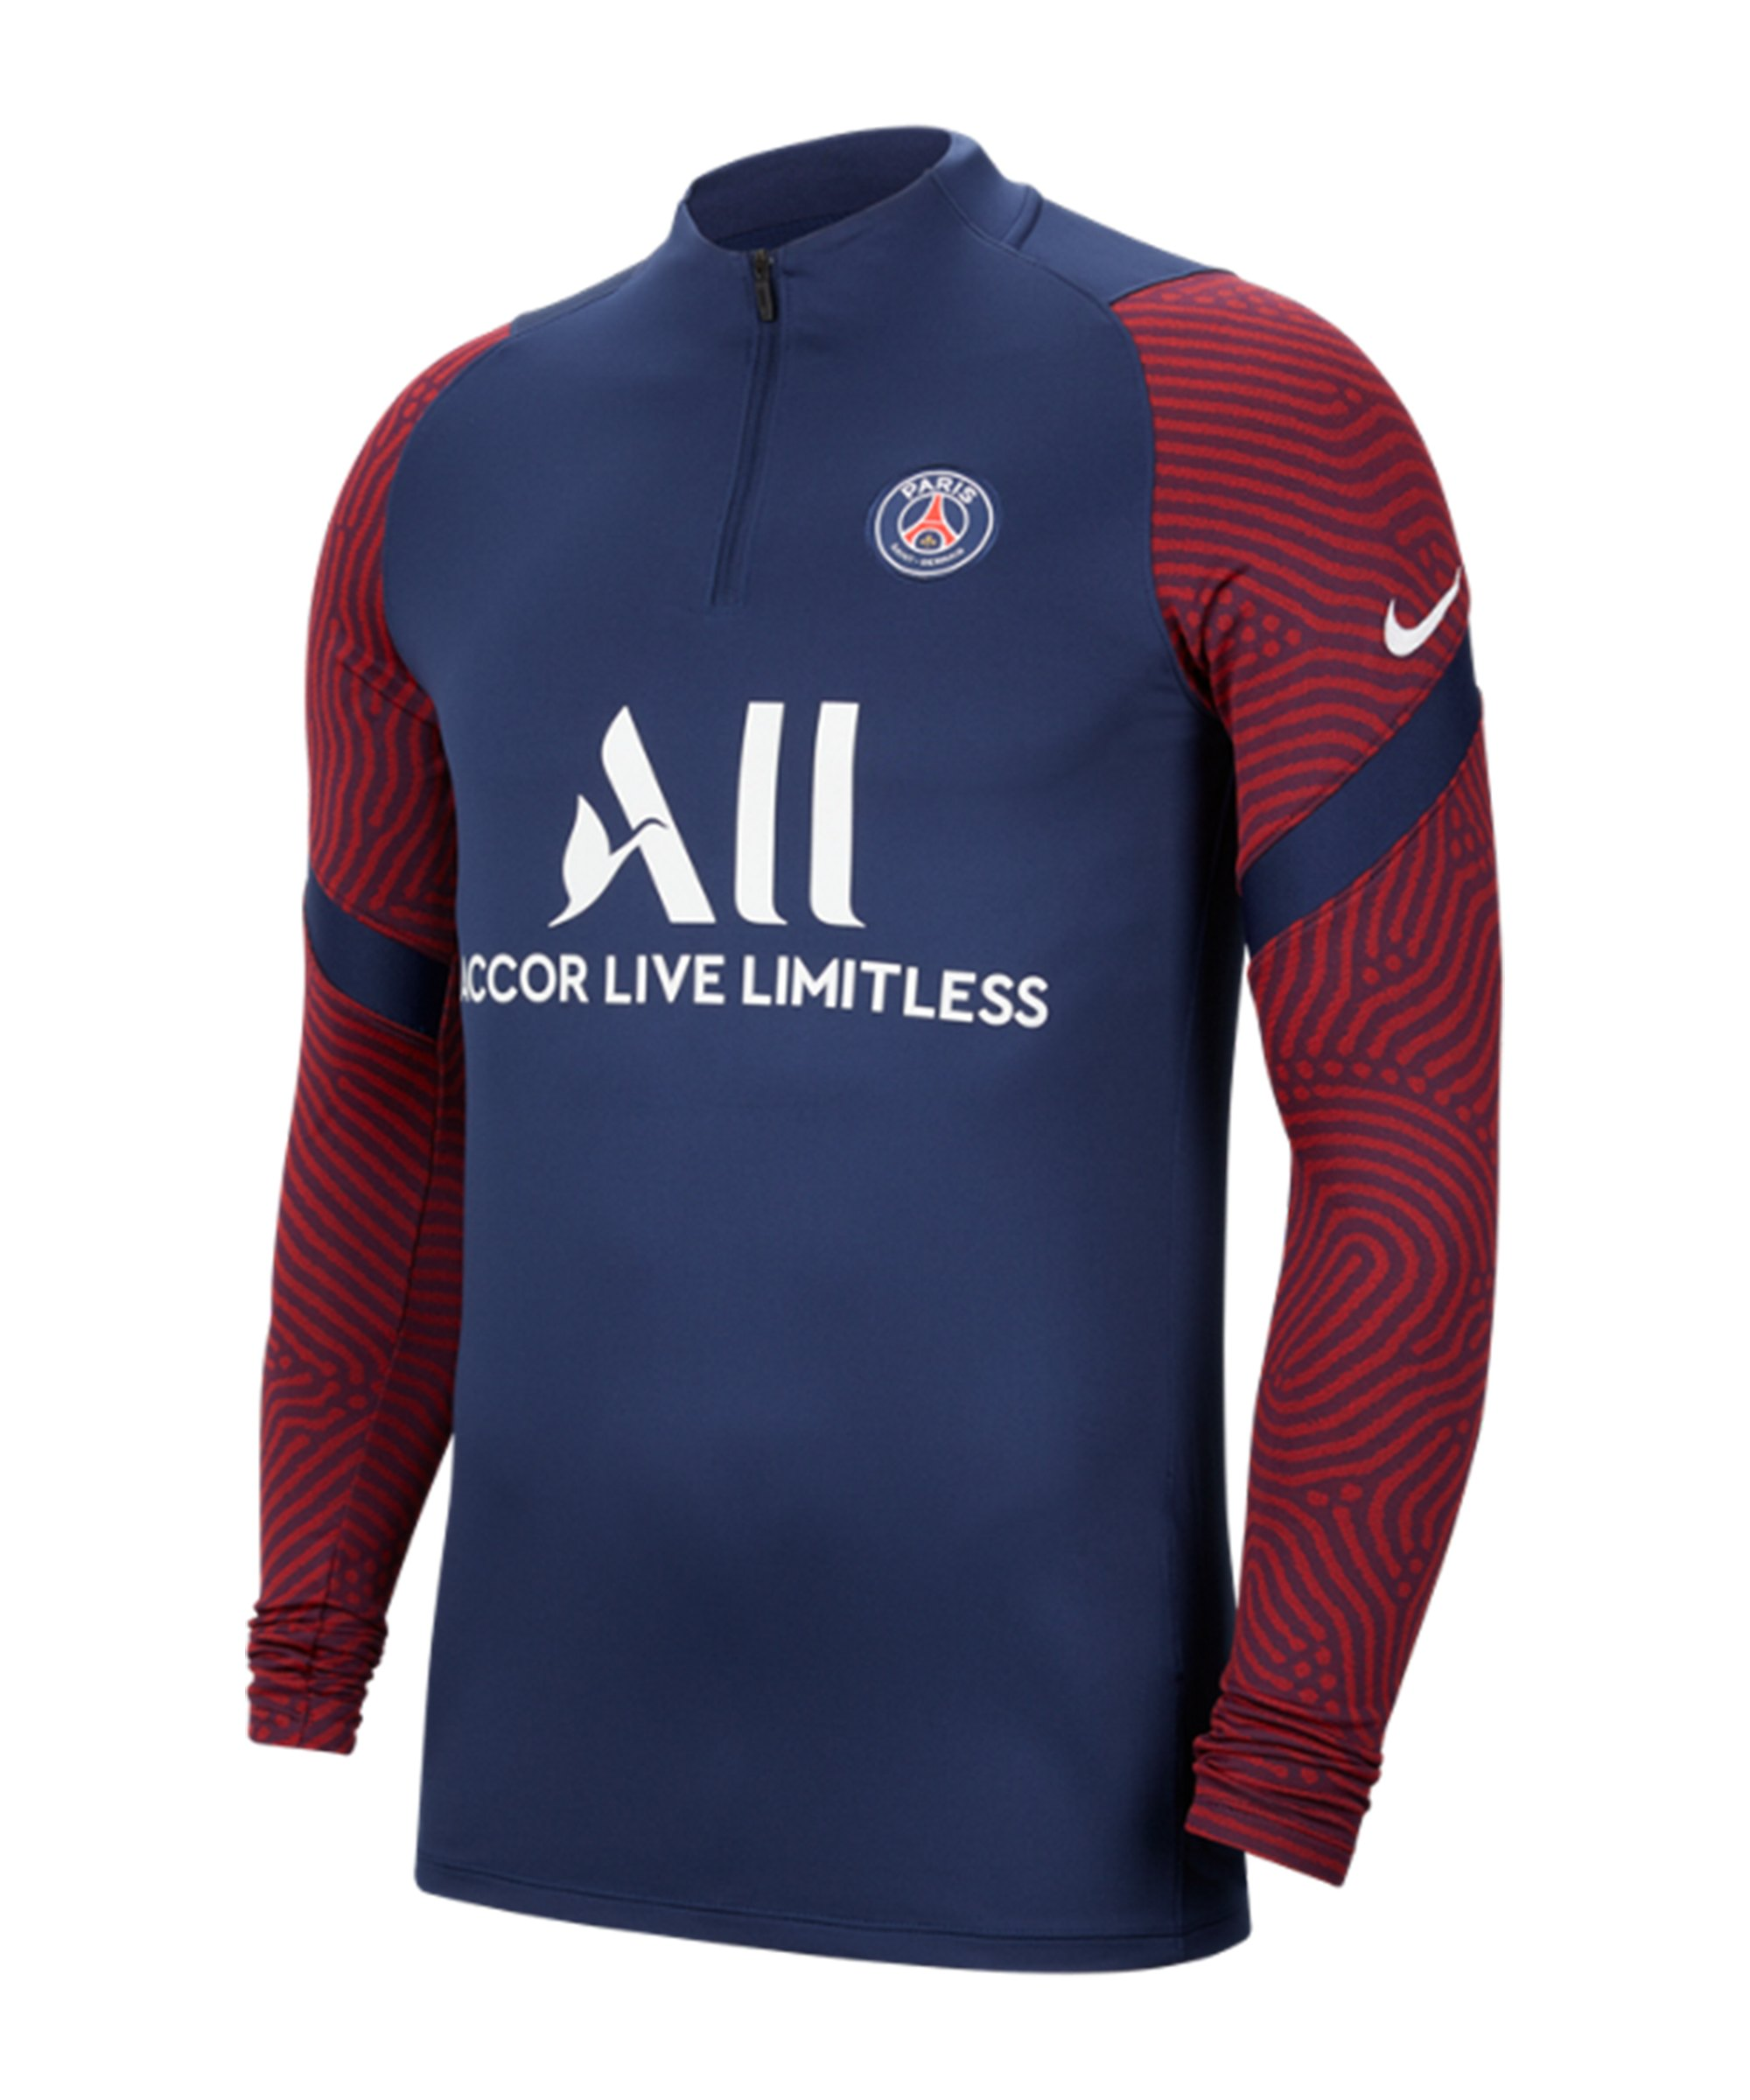 Nike Paris St. Germain Dri-FIT 1/4 Zip Top LS F411 - blau